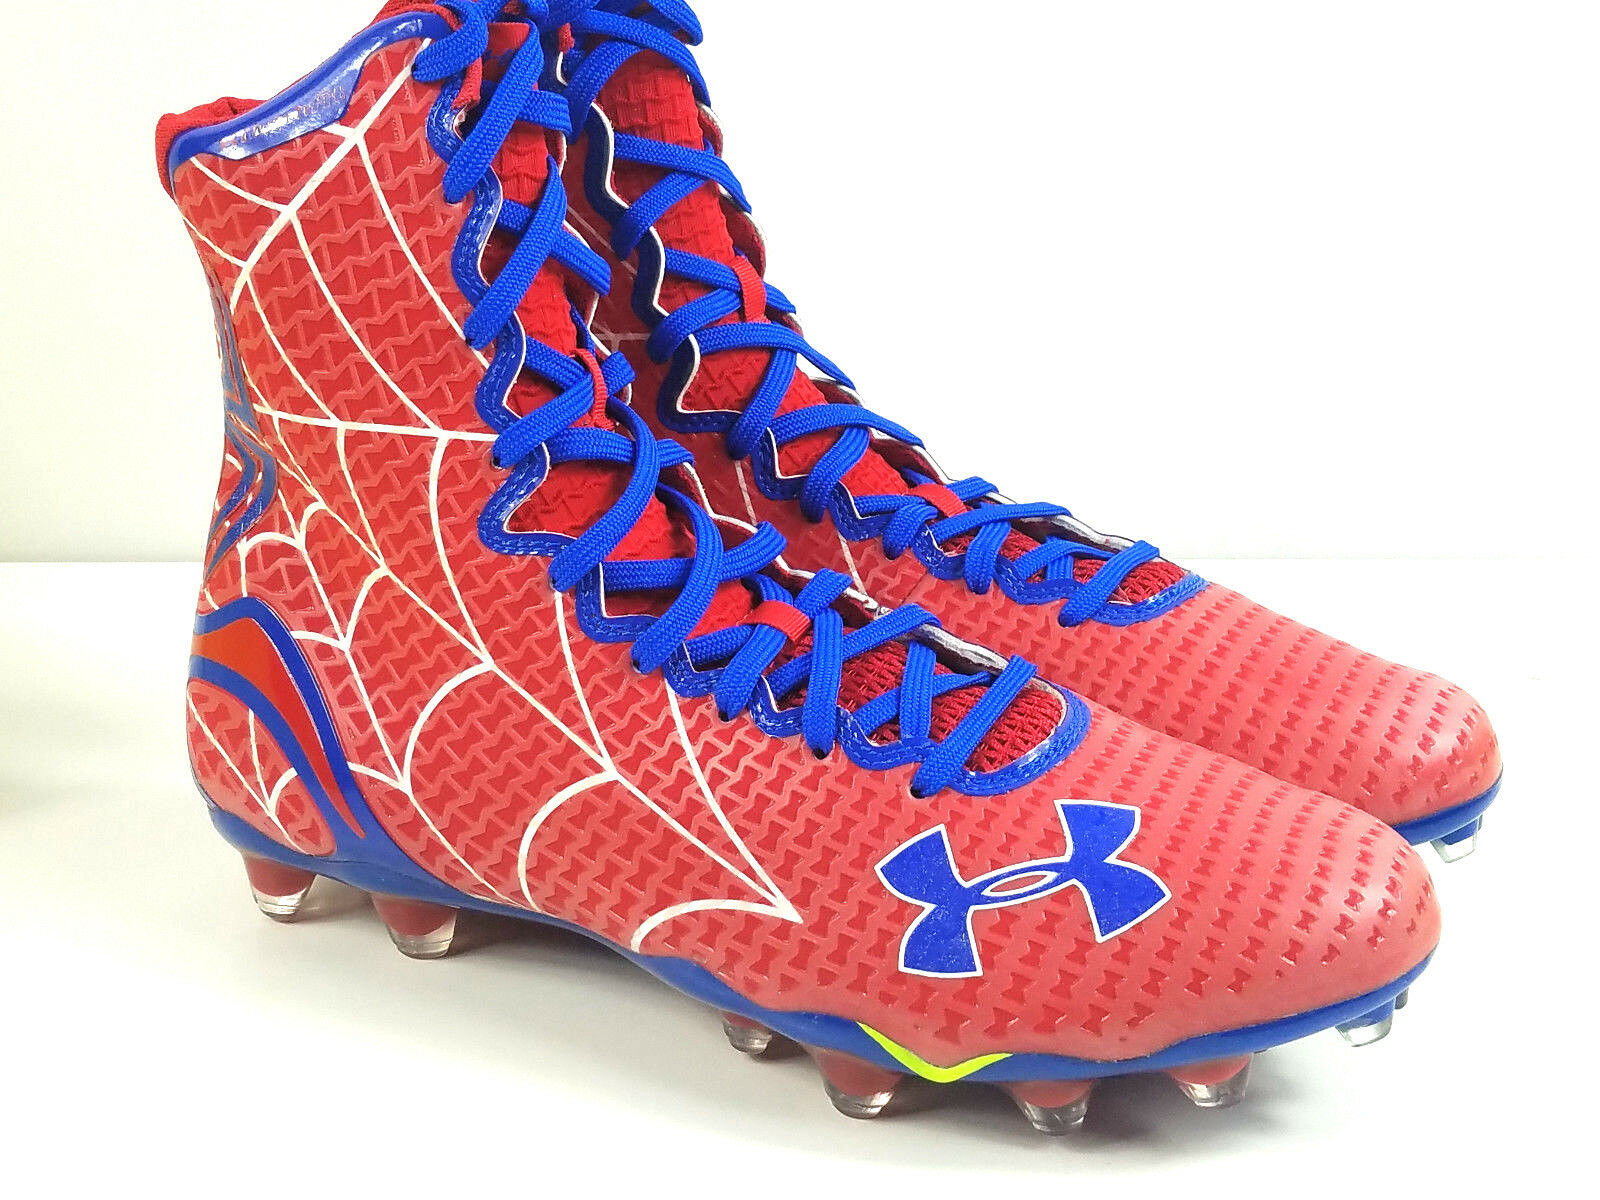 NEW CLEATS UNDER ARMOUR UA HIGHLIGHT ALTER EGO SPIDERMAN FOOTBALL CLEATS NEW MC SZ 11   fe11f6